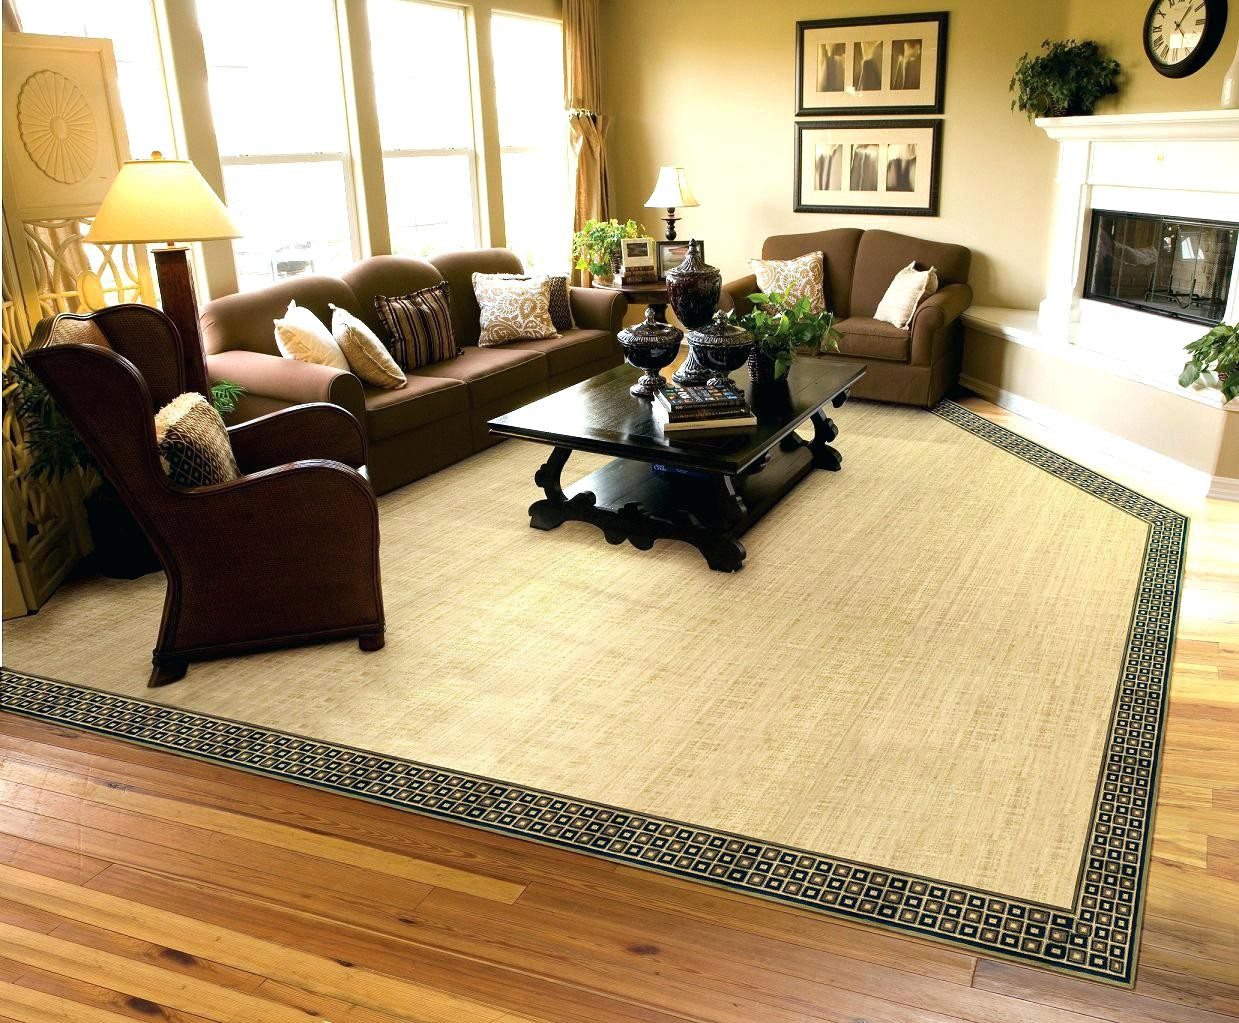 custom area rugs with logos unique area rug outlets near me notre dame GWPYIGG